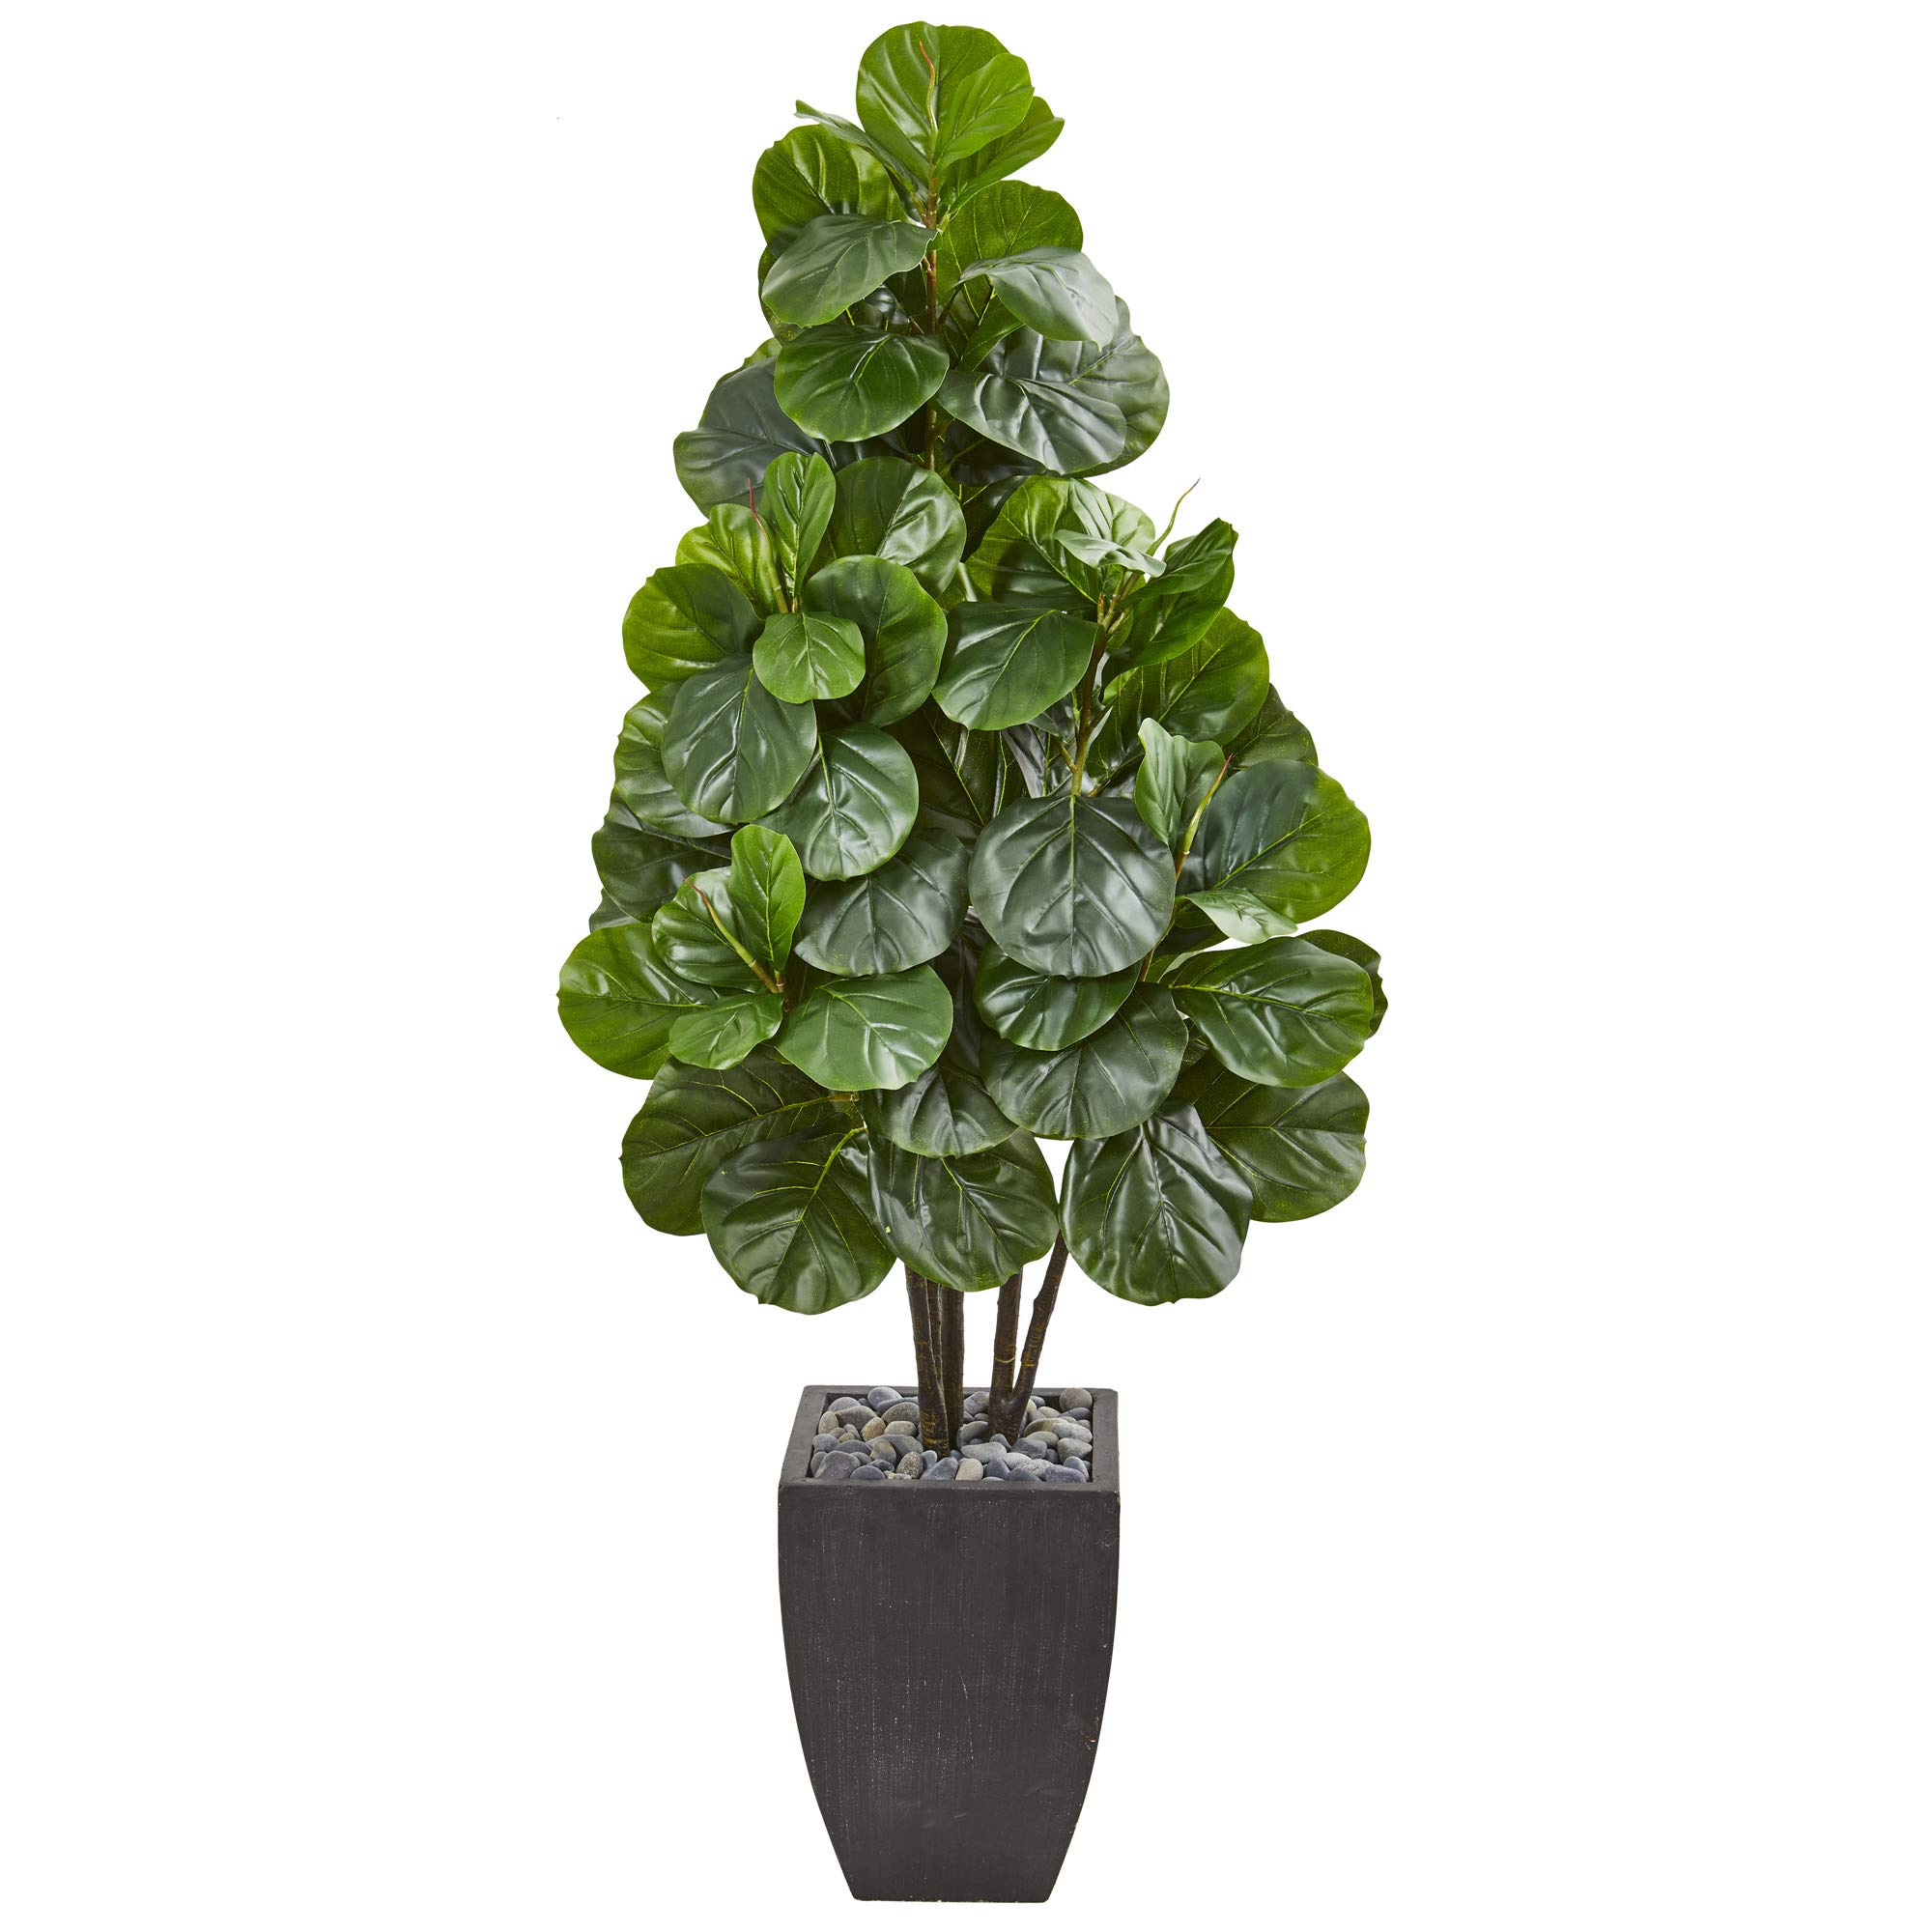 Nearly Natural 9384 63-in. Fiddle Leaf Fig Artificial Black Planter Silk Trees Green